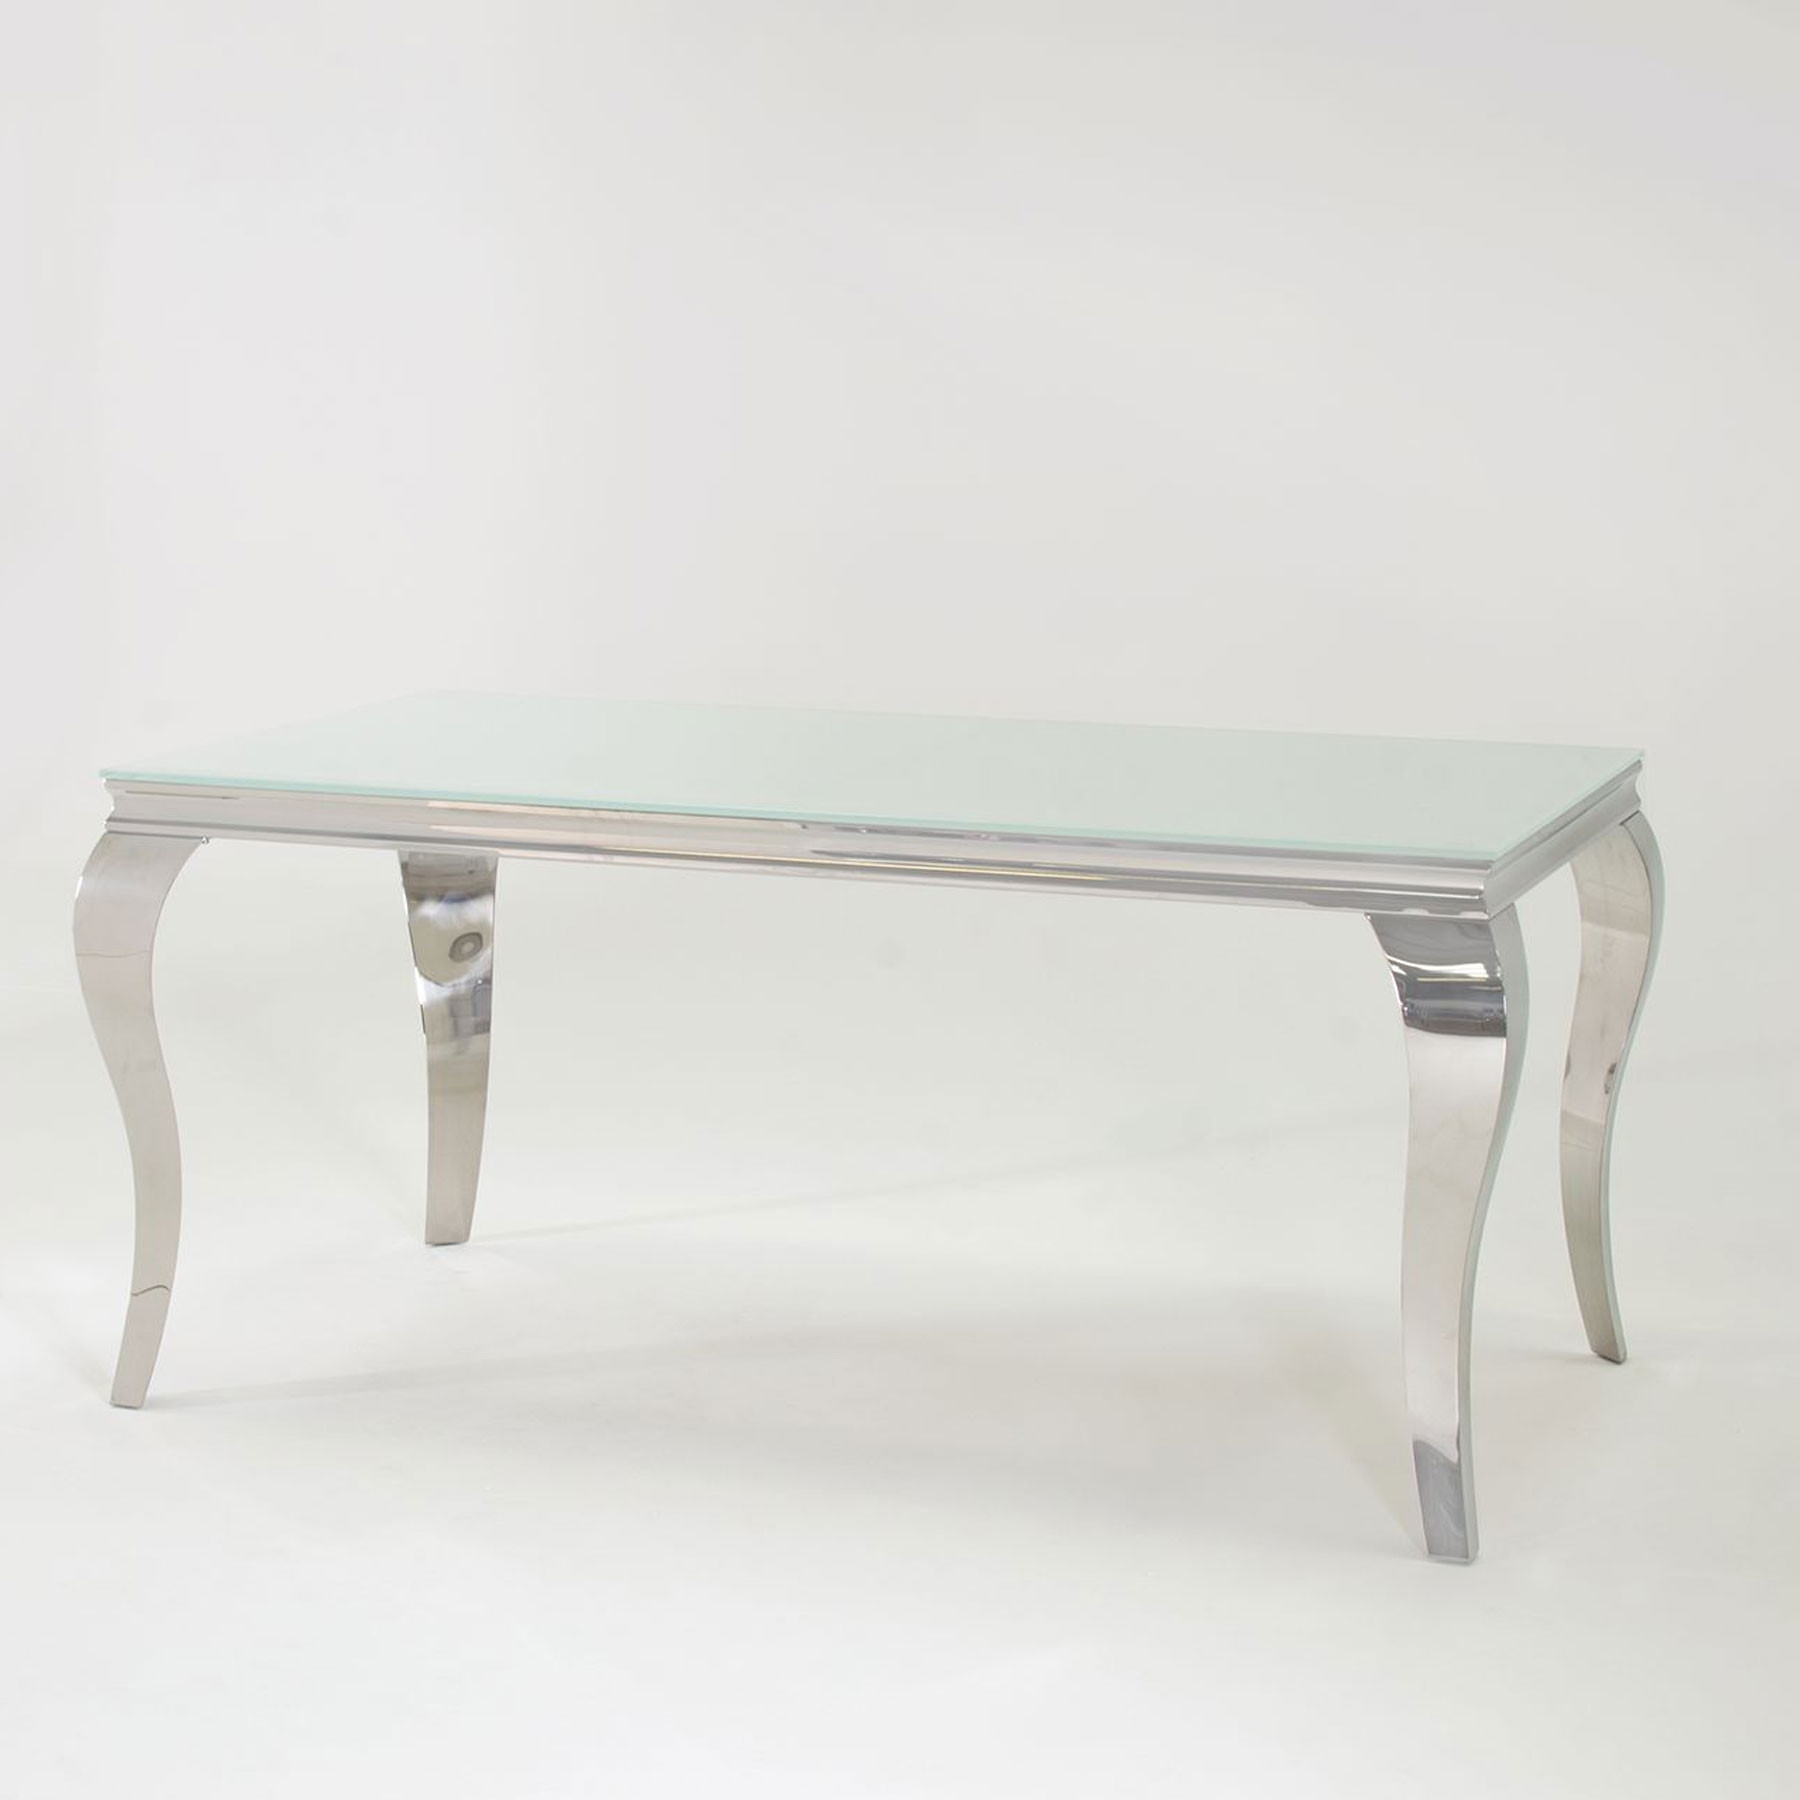 Fadenza White Glass 200Cm Dining Table For Best And Newest Glass And Stainless Steel Dining Tables (View 9 of 25)